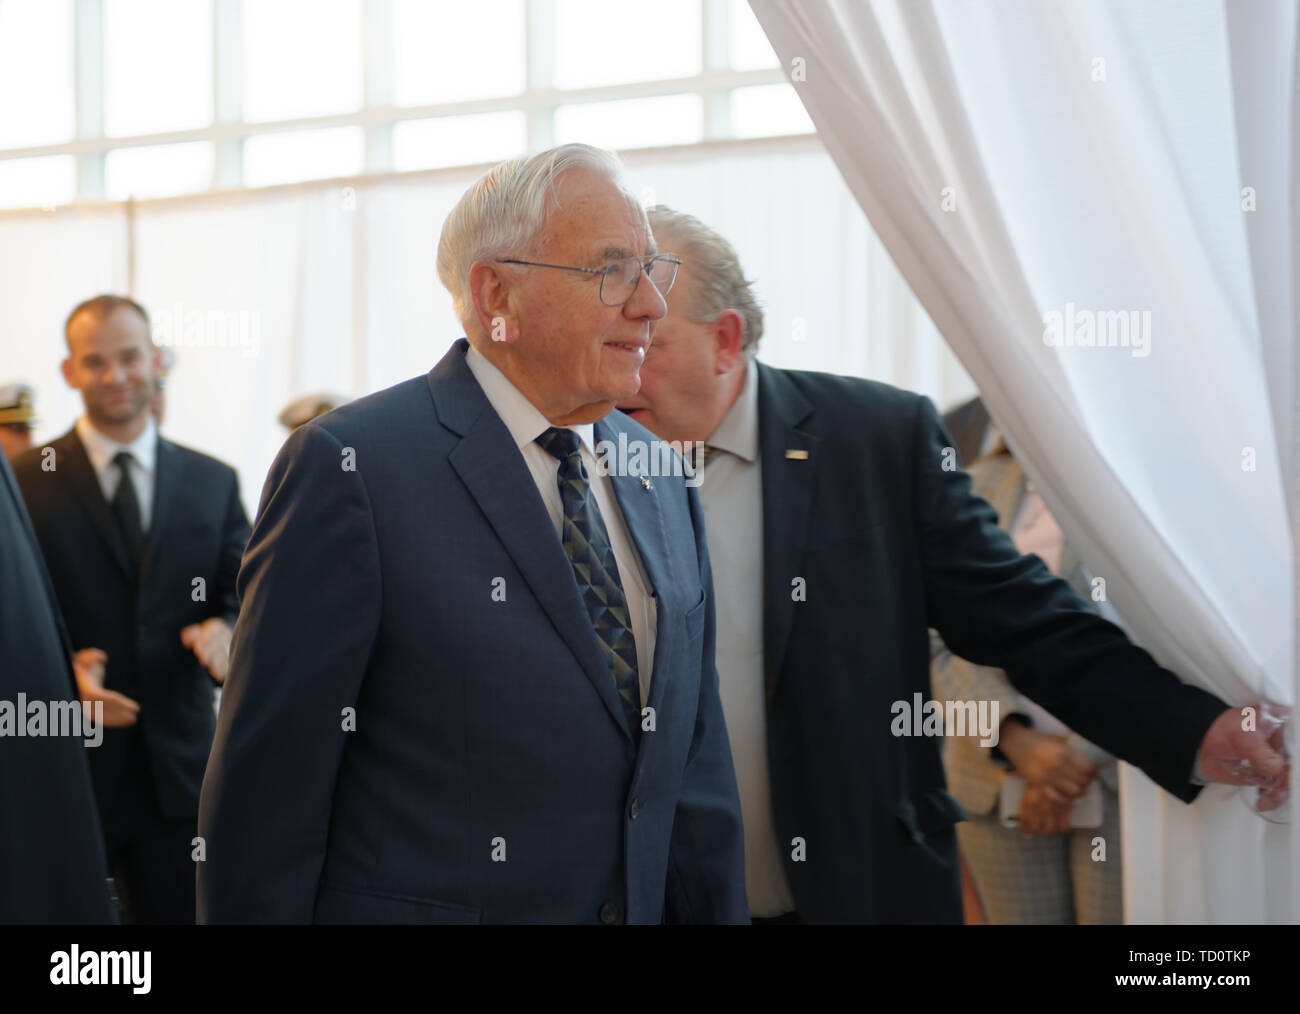 Garden City, New York, USA. 6th June, 2019. At center, Apollo Flight Director MILTON WINDLER walks through entrance curtain, at Cradle of Aviation Museum, to Apollo at 50 Anniversary Dinner, an Apollo astronaut tribute celebrating the Apollo 11 mission Moon landing. Credit: Ann Parry/ZUMA Wire/Alamy Live News - Stock Image